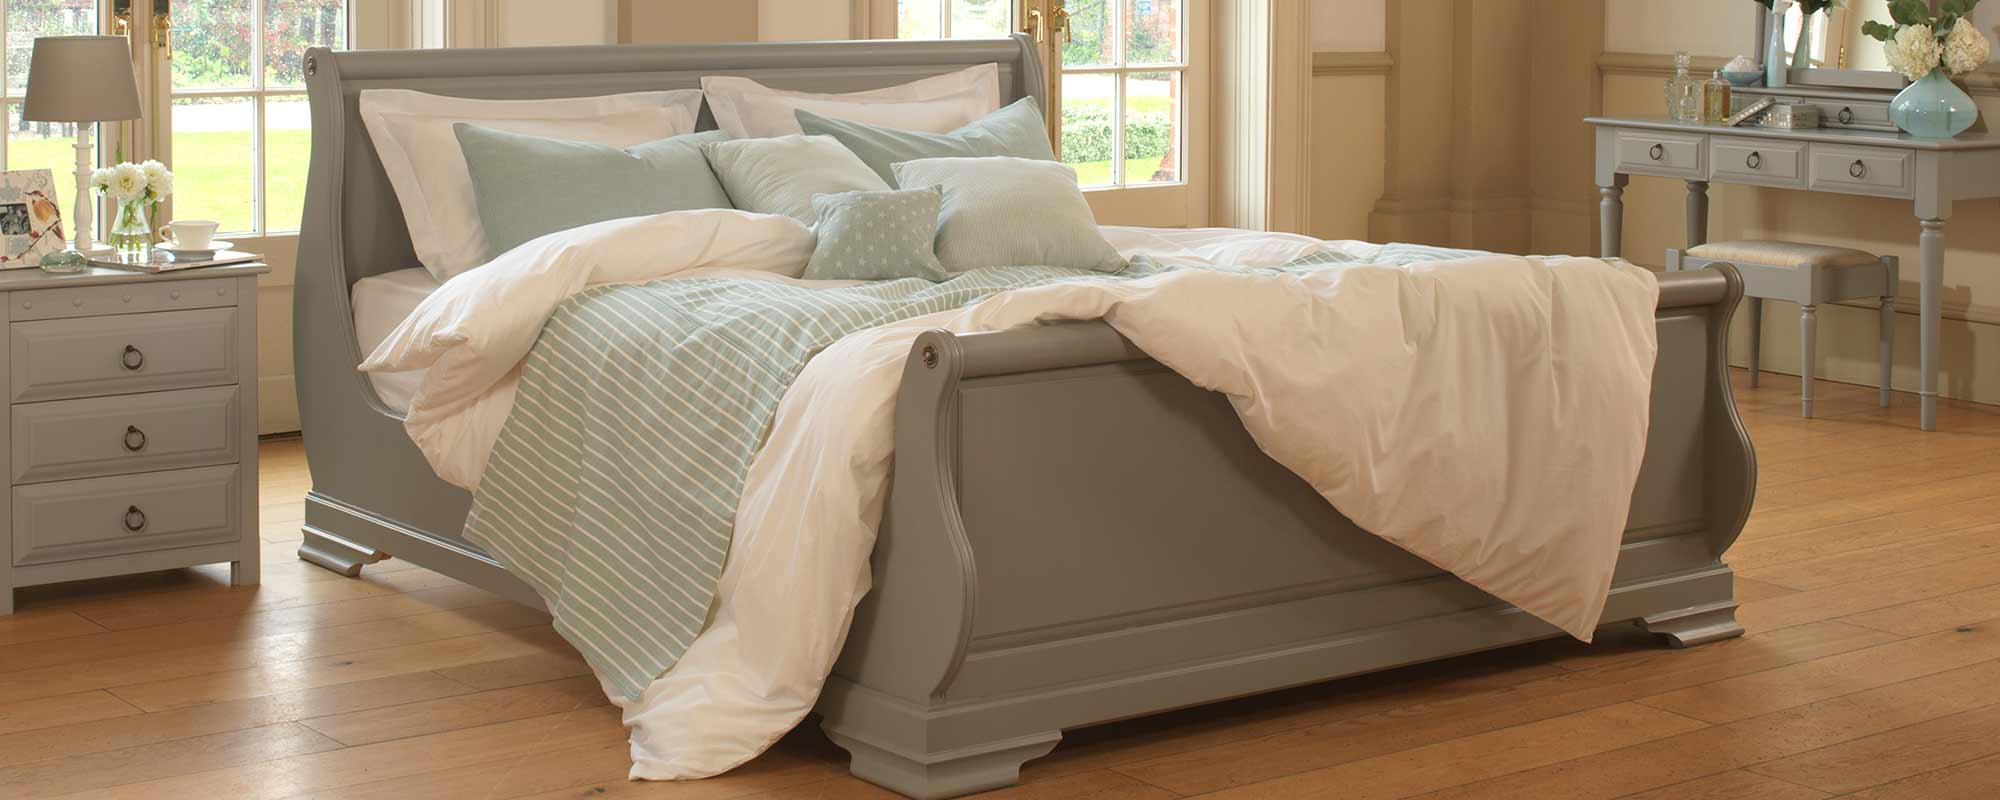 Painted Wooden Beds 10 Painted Finish Options Revival Beds